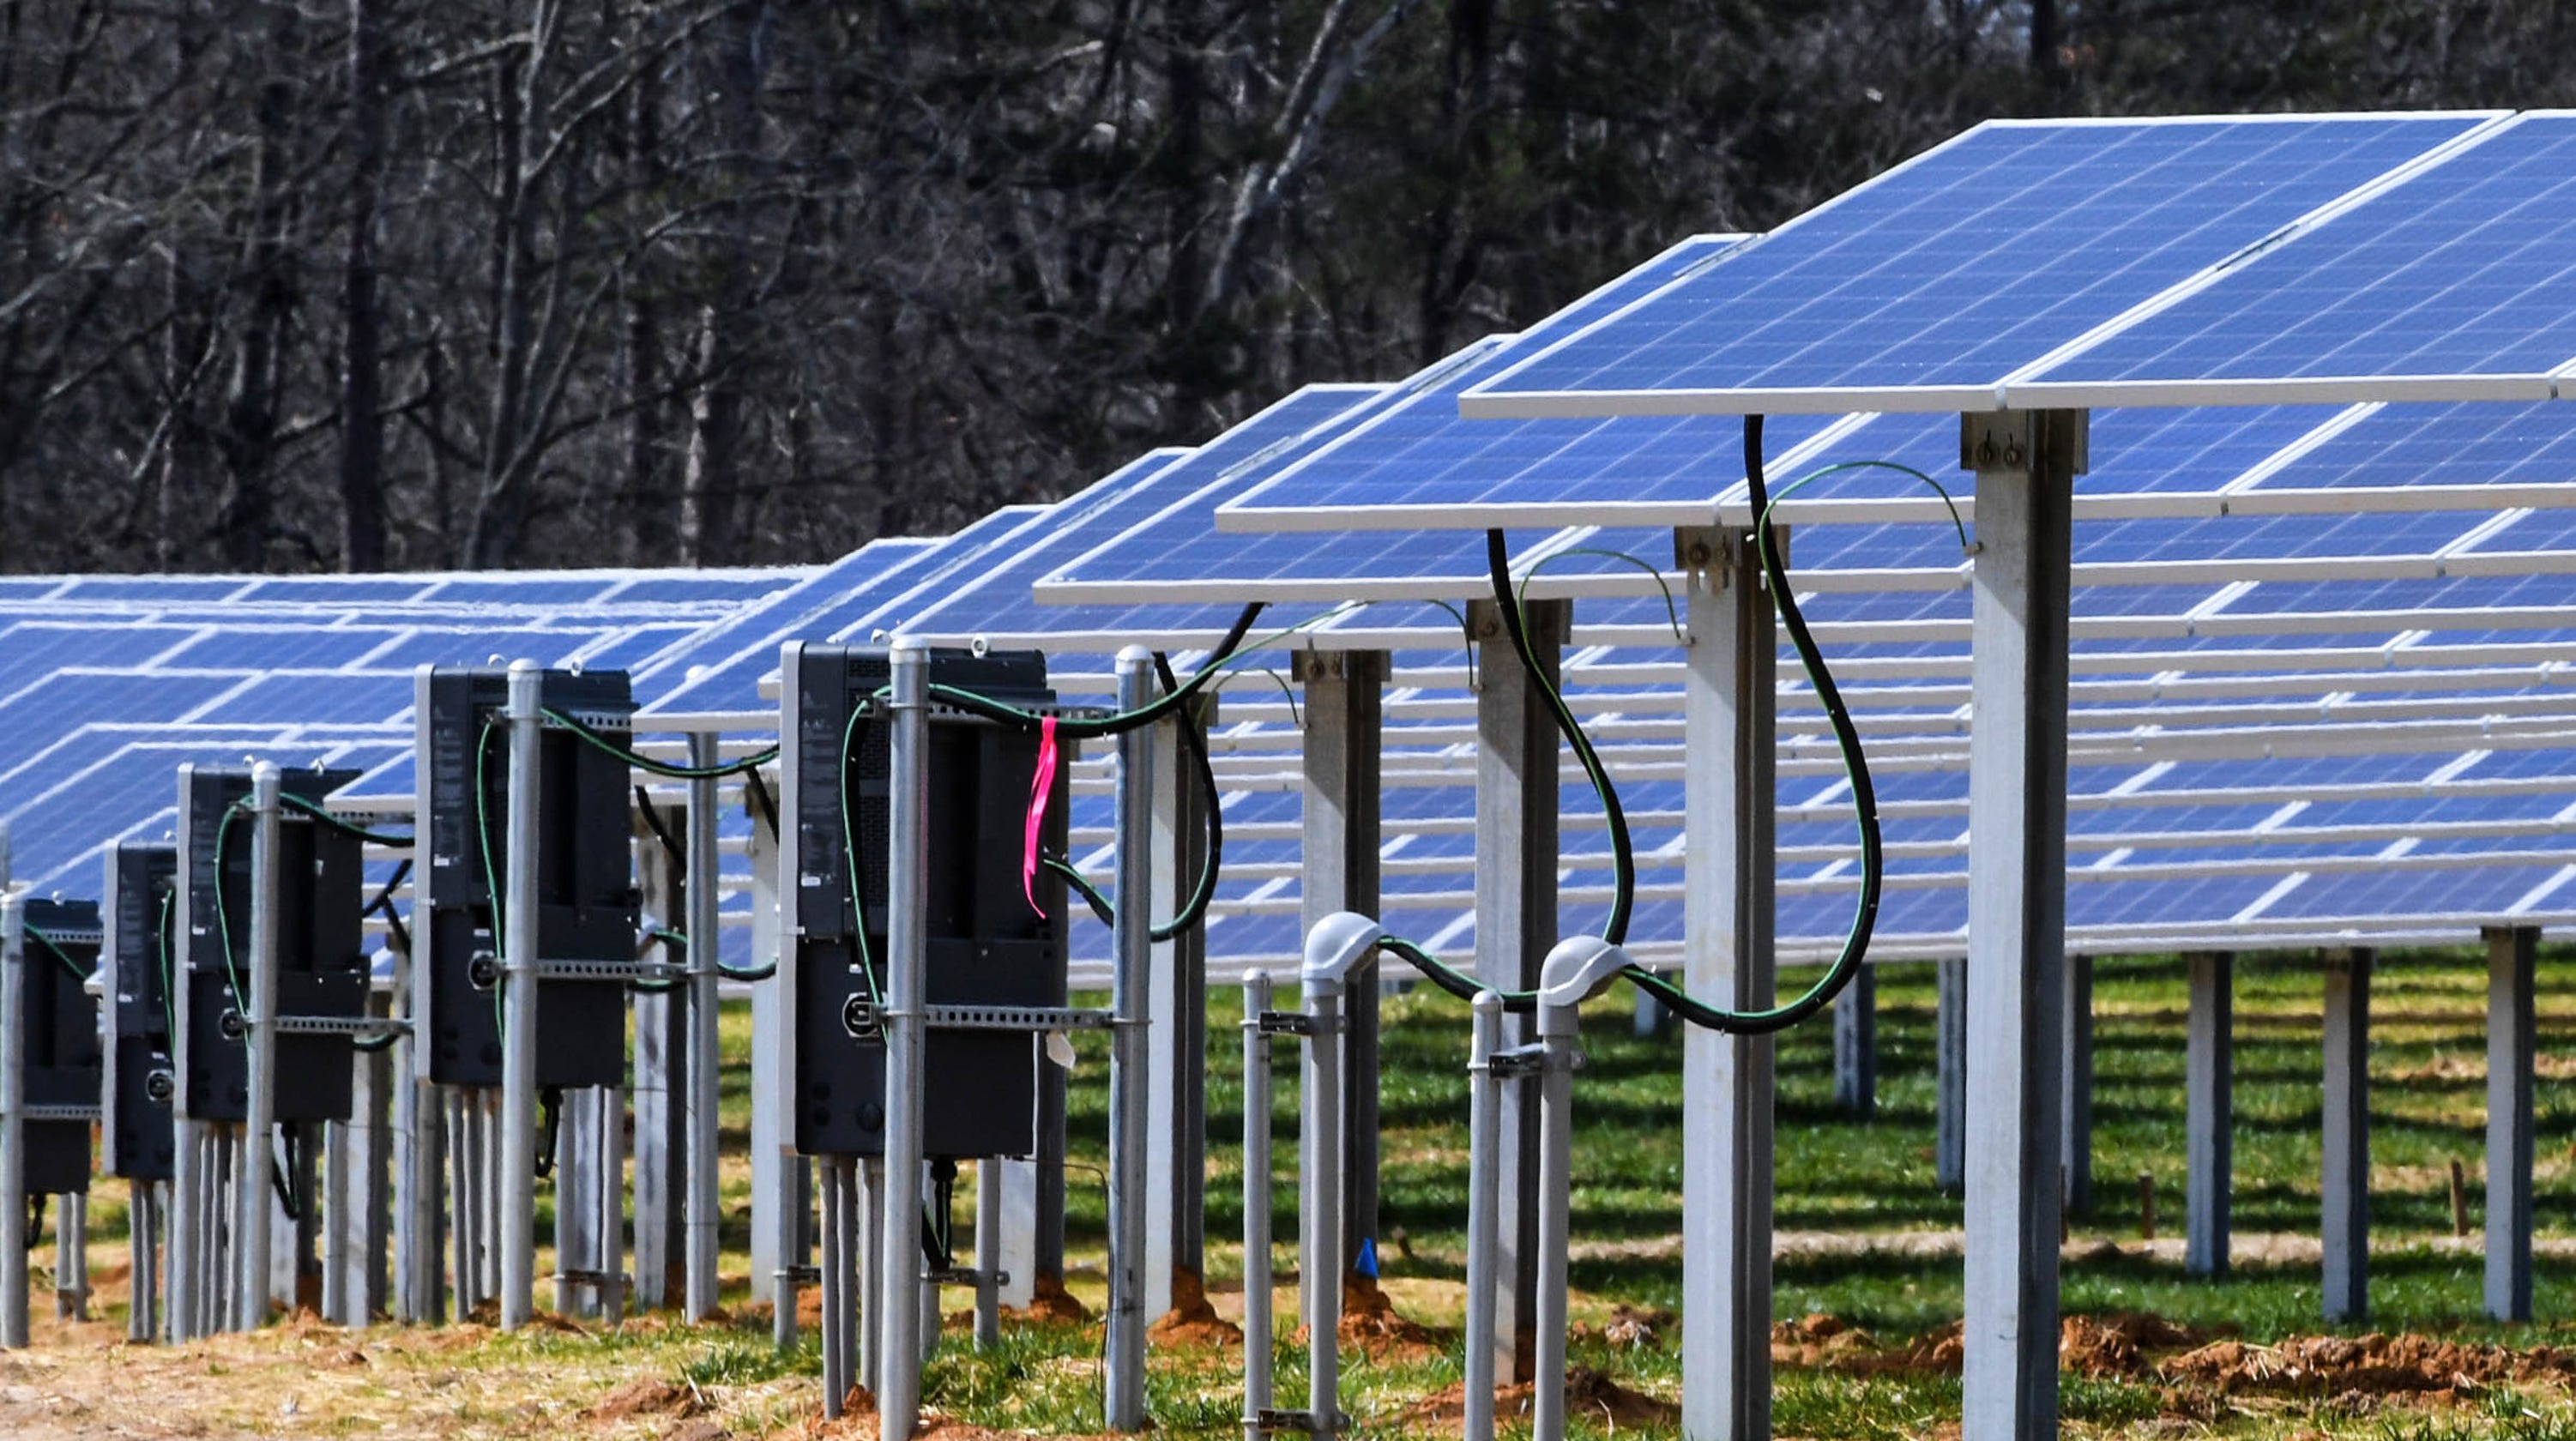 Solar in SC: Why Greenville County doesn't have commercial solar farms